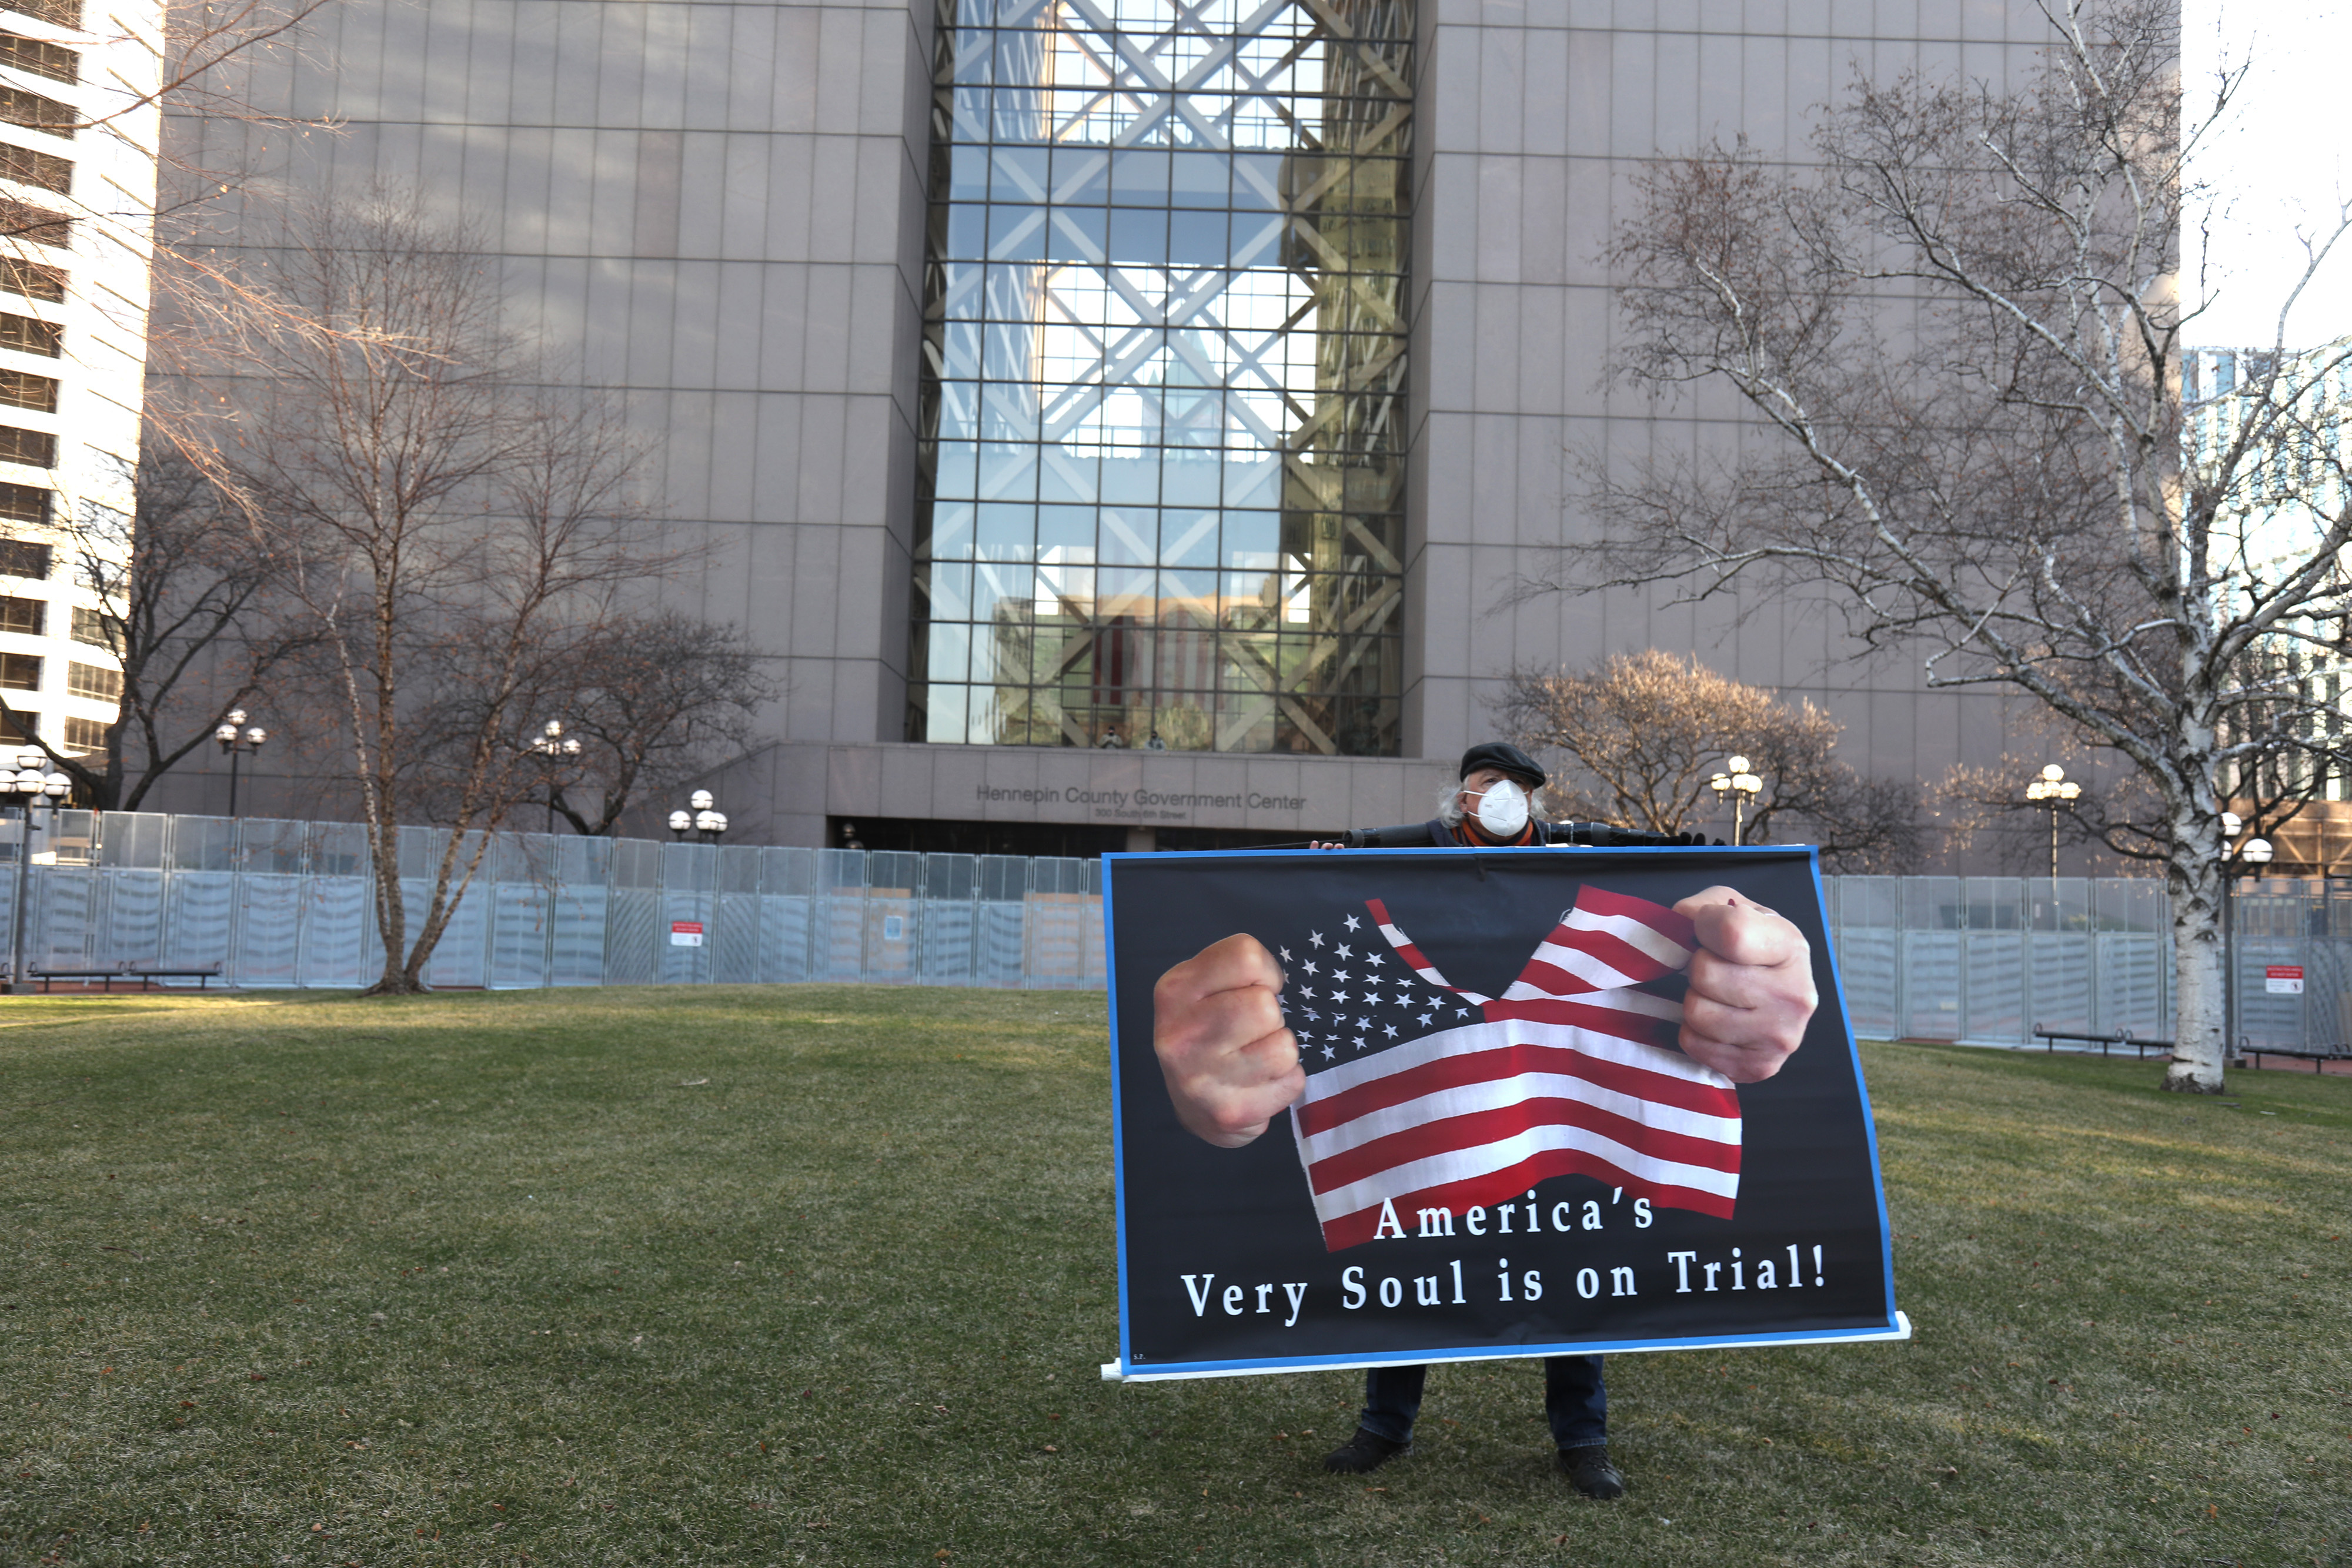 A demonstrator holds a sign outside the Hennepin County Government Center in Minneapolis on Monday, March 29, 2021., as Derek Chauvin's trial began in a courtroom inside